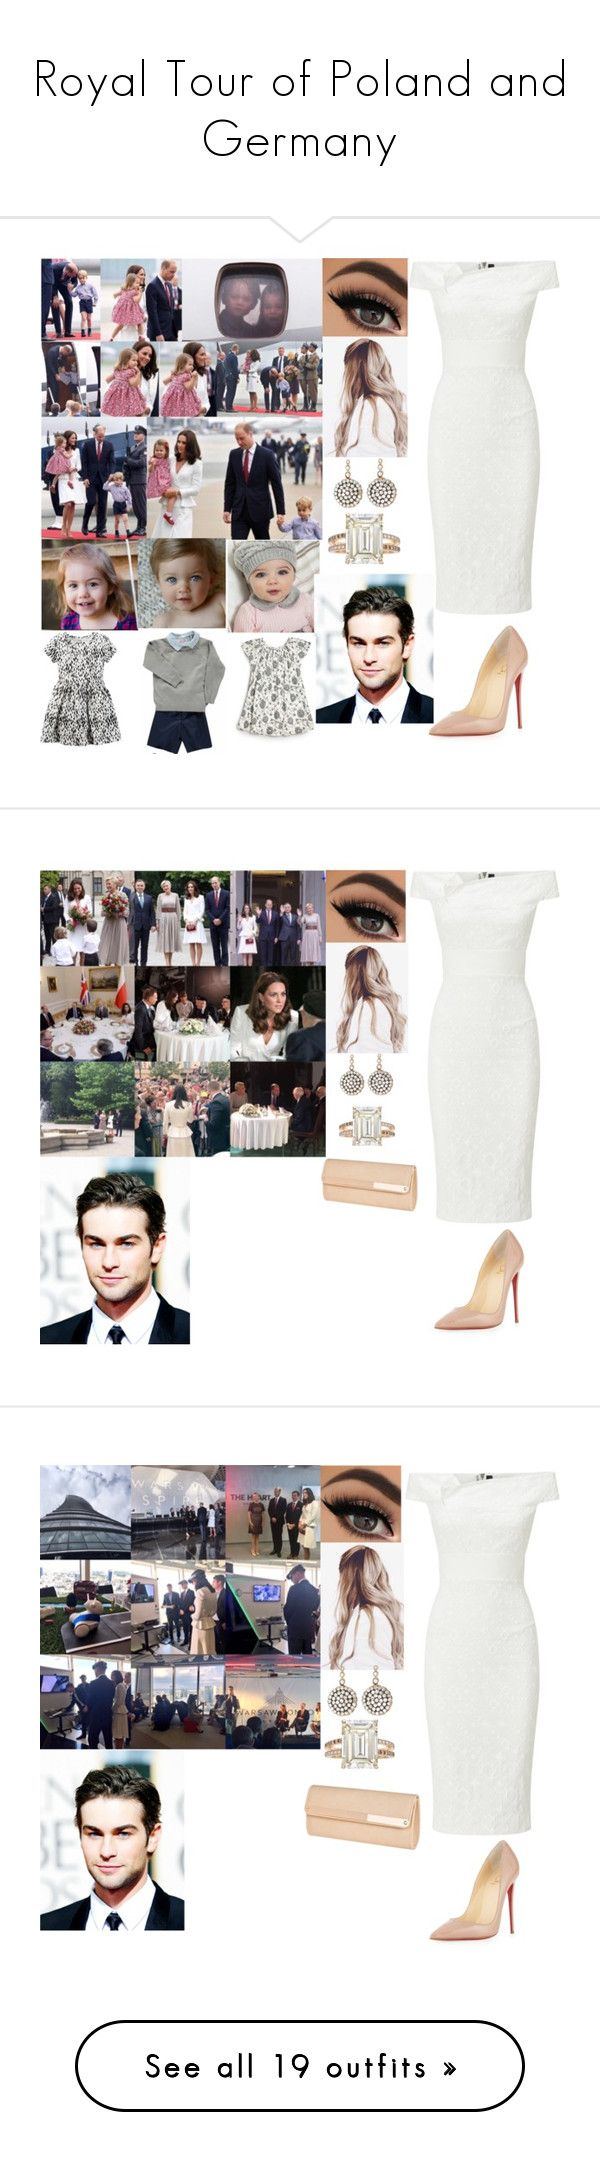 """""""Royal Tour of Poland and Germany"""" by dawn-wales ❤ liked on Polyvore featuring Roland Mouret, Christian Louboutin, Selim Mouzannar, Betteridge, Carter's, Bonpoint, Billini, Rare London, Charlotte Russe and Sara Weinstock"""